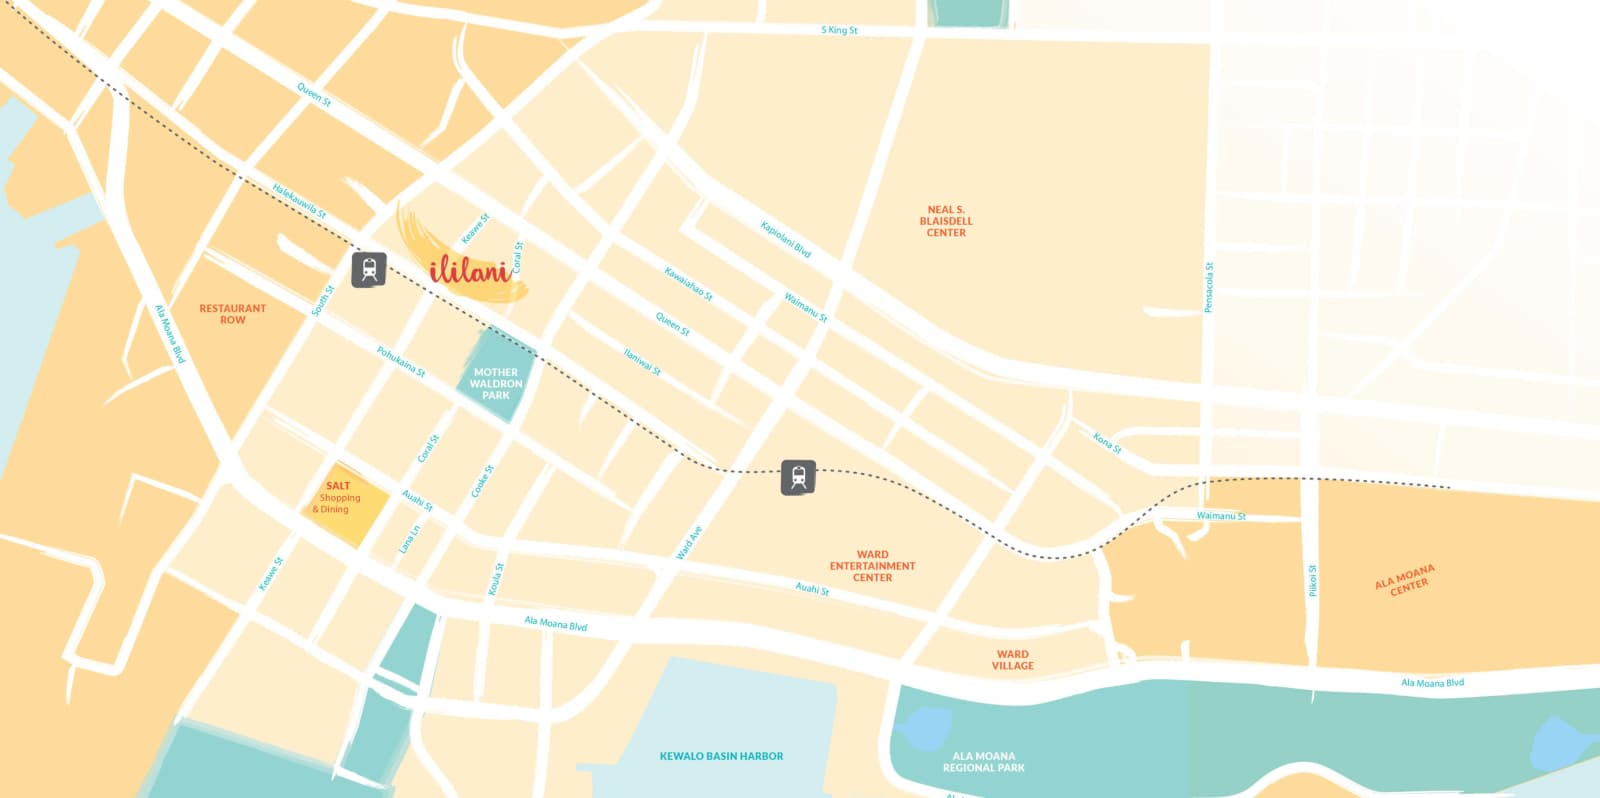 Map showing Ililani Project Location